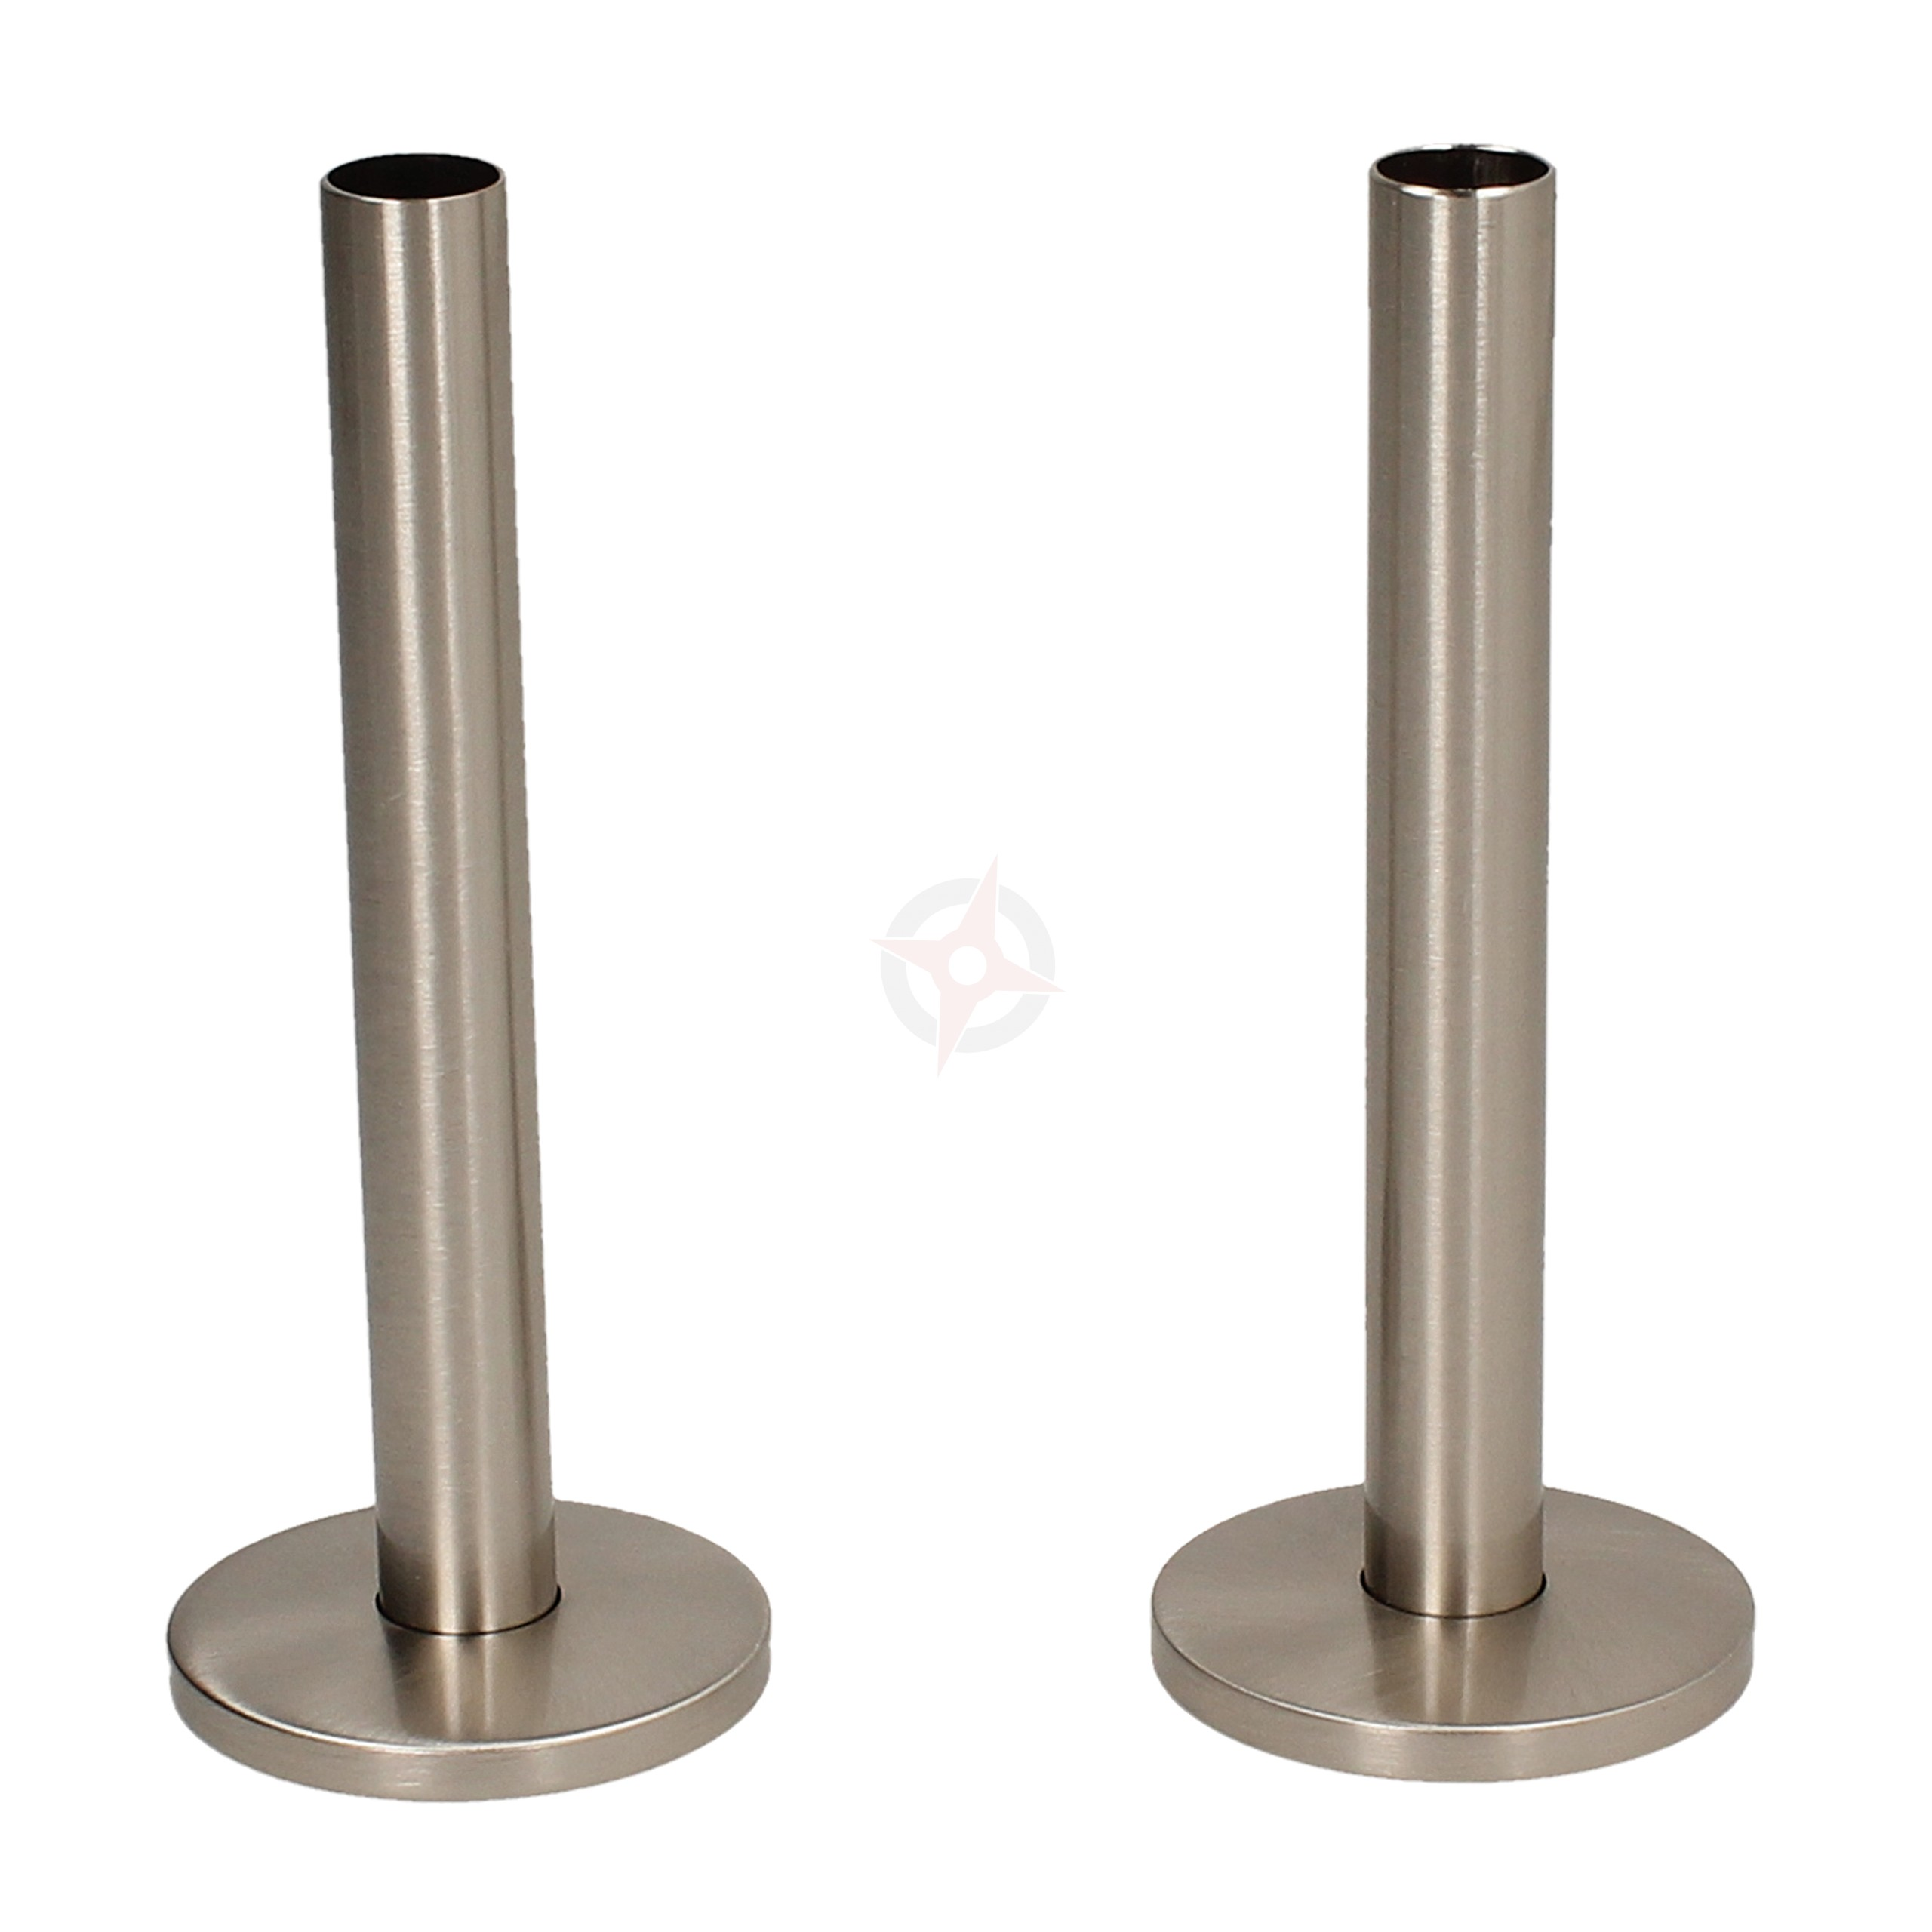 Silver Nickel 15mm x 130mm Pipe Tails and Decoration Floor Plates (Pair)